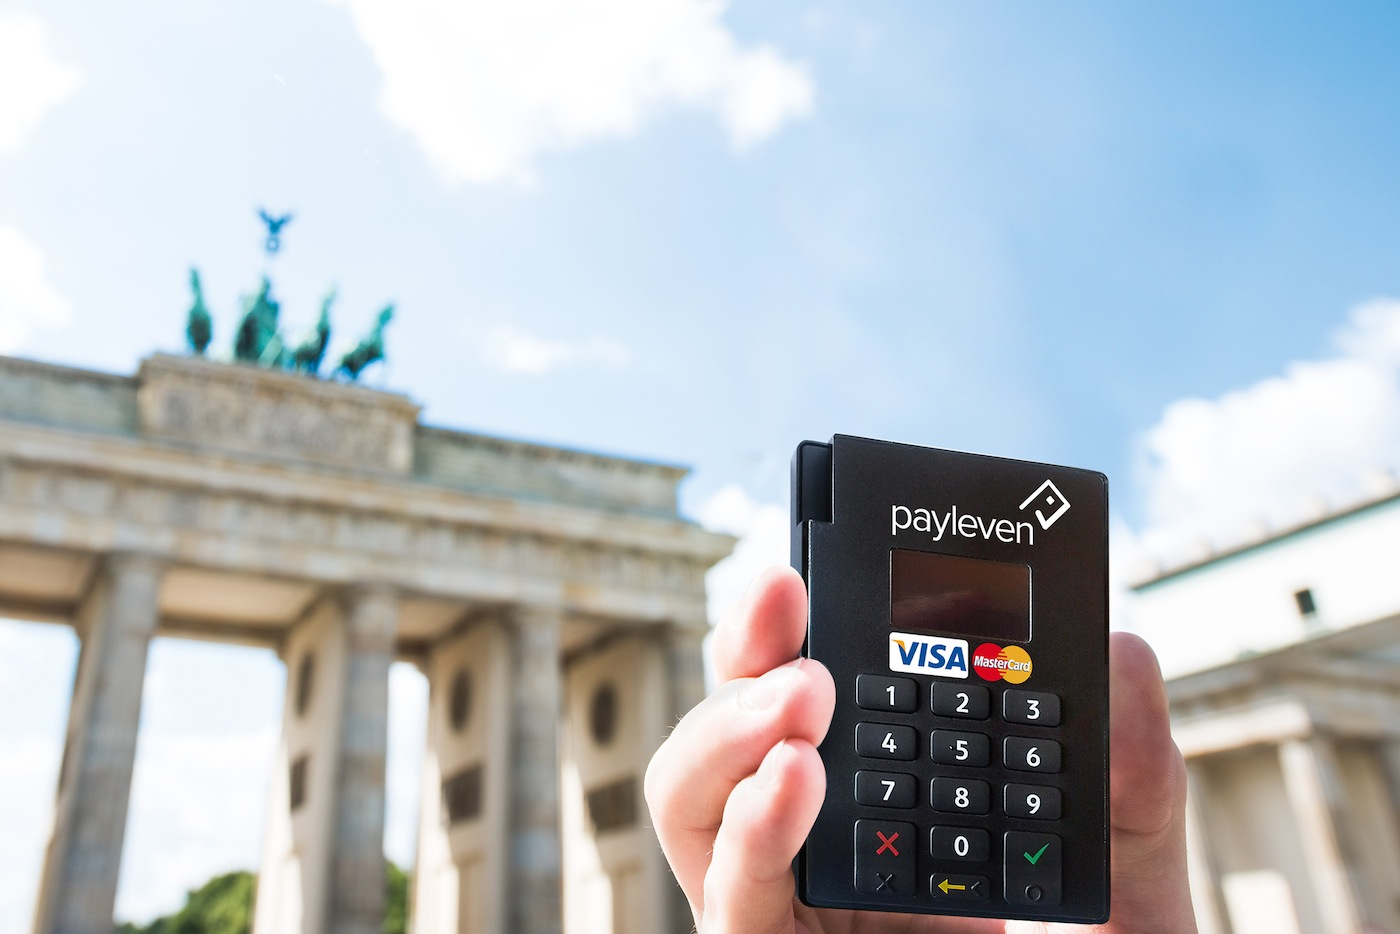 European Square clone Payleven one-ups rival iZettle with 'Chip & PIN' solution